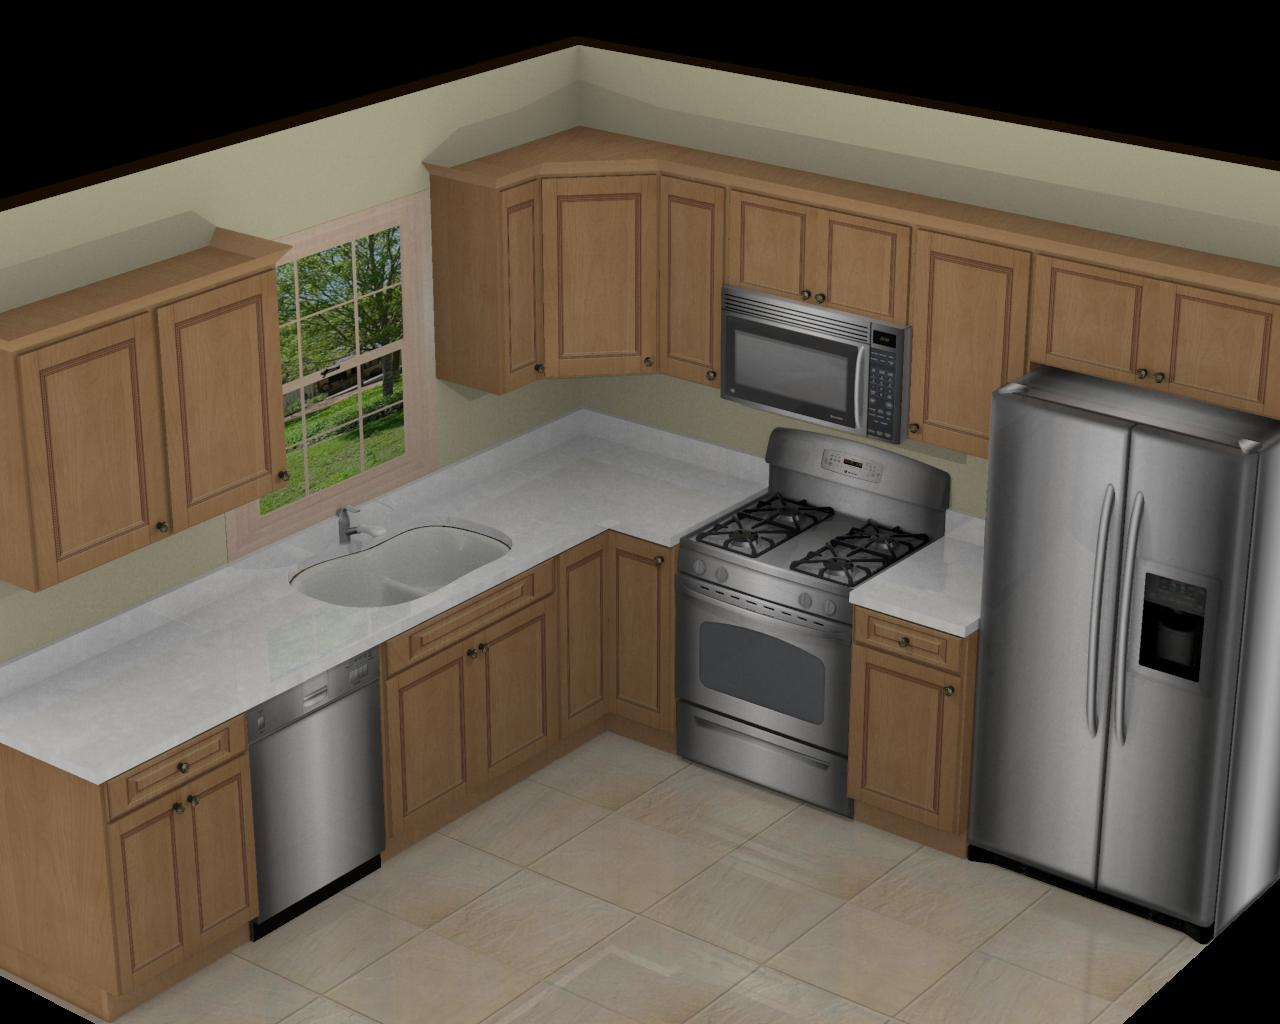 Foundation dezin decor 3d kitchen model design for Kitchen styles and designs